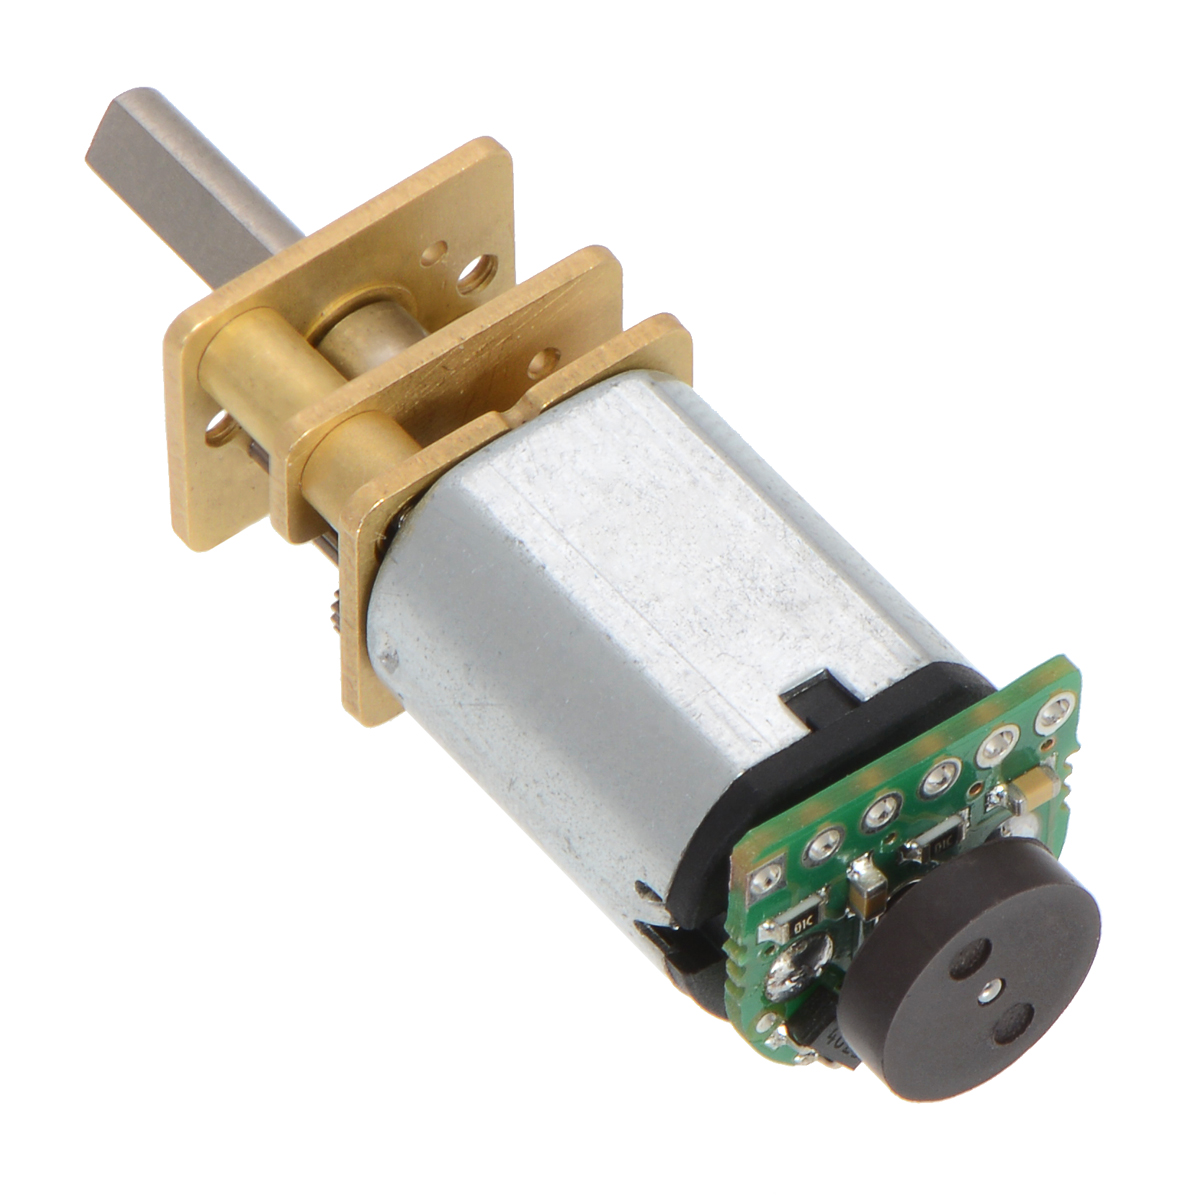 Pololu New Products Magnetic Quadrature Encoders For Micro Metal Arduino Relay Switch Gearmotors